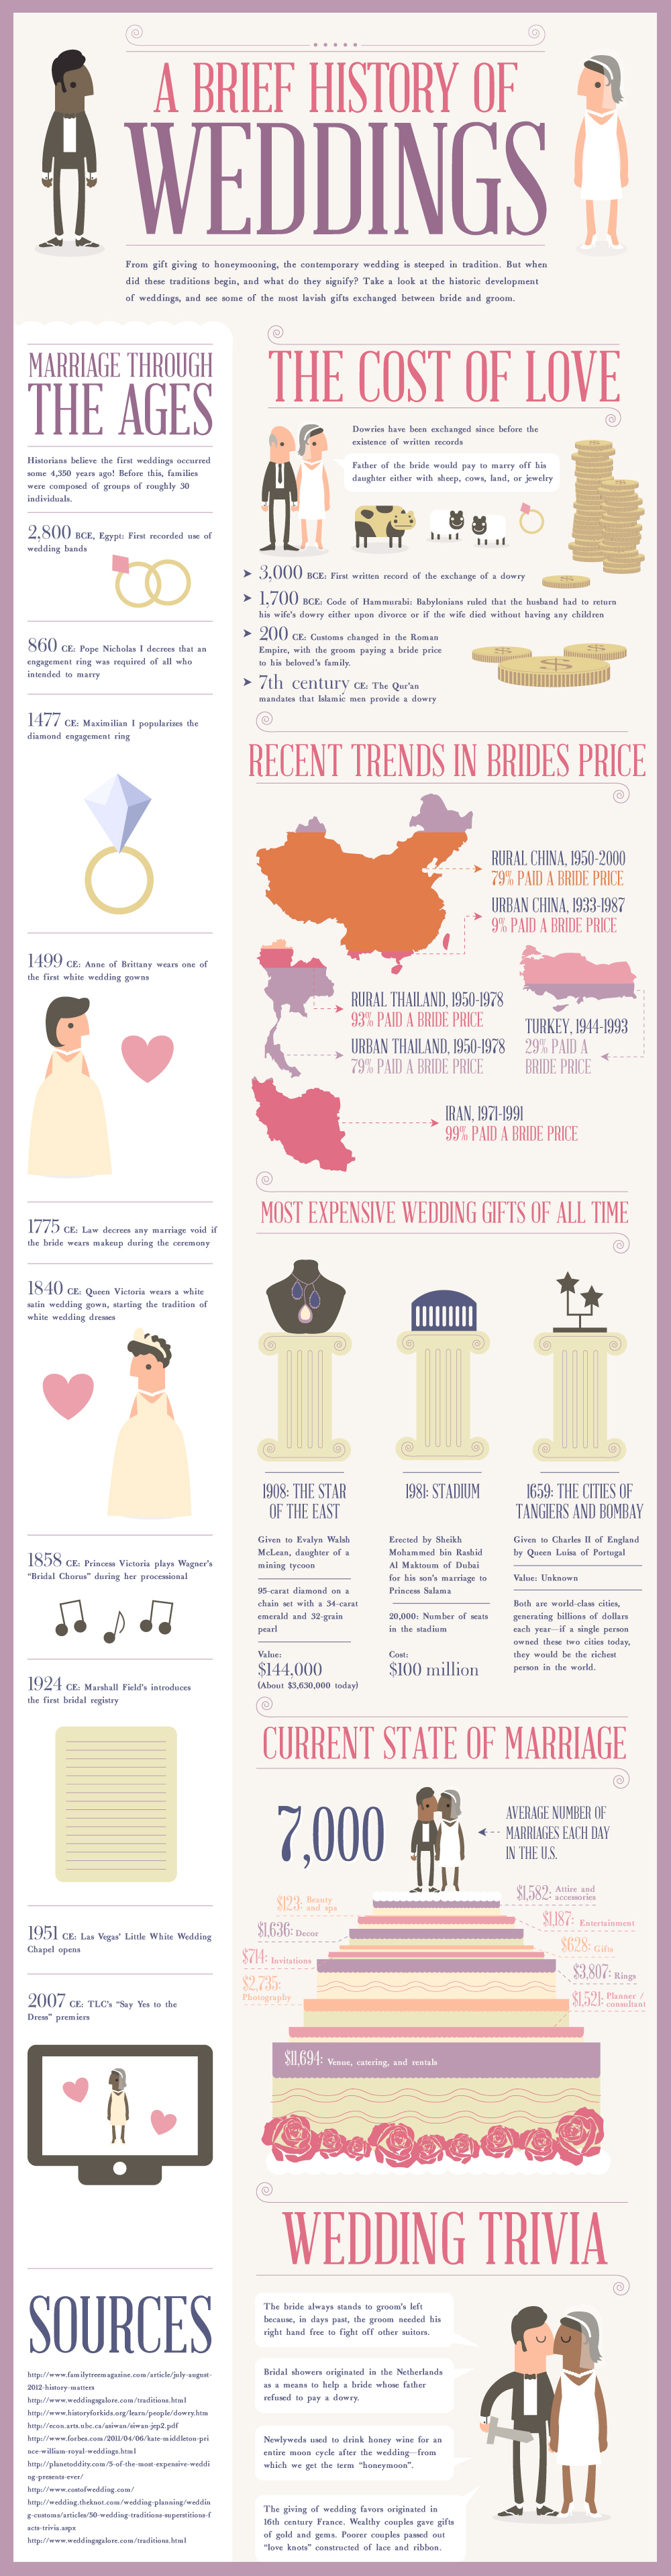 a-brief-history-of-weddings_50be7ff4466d